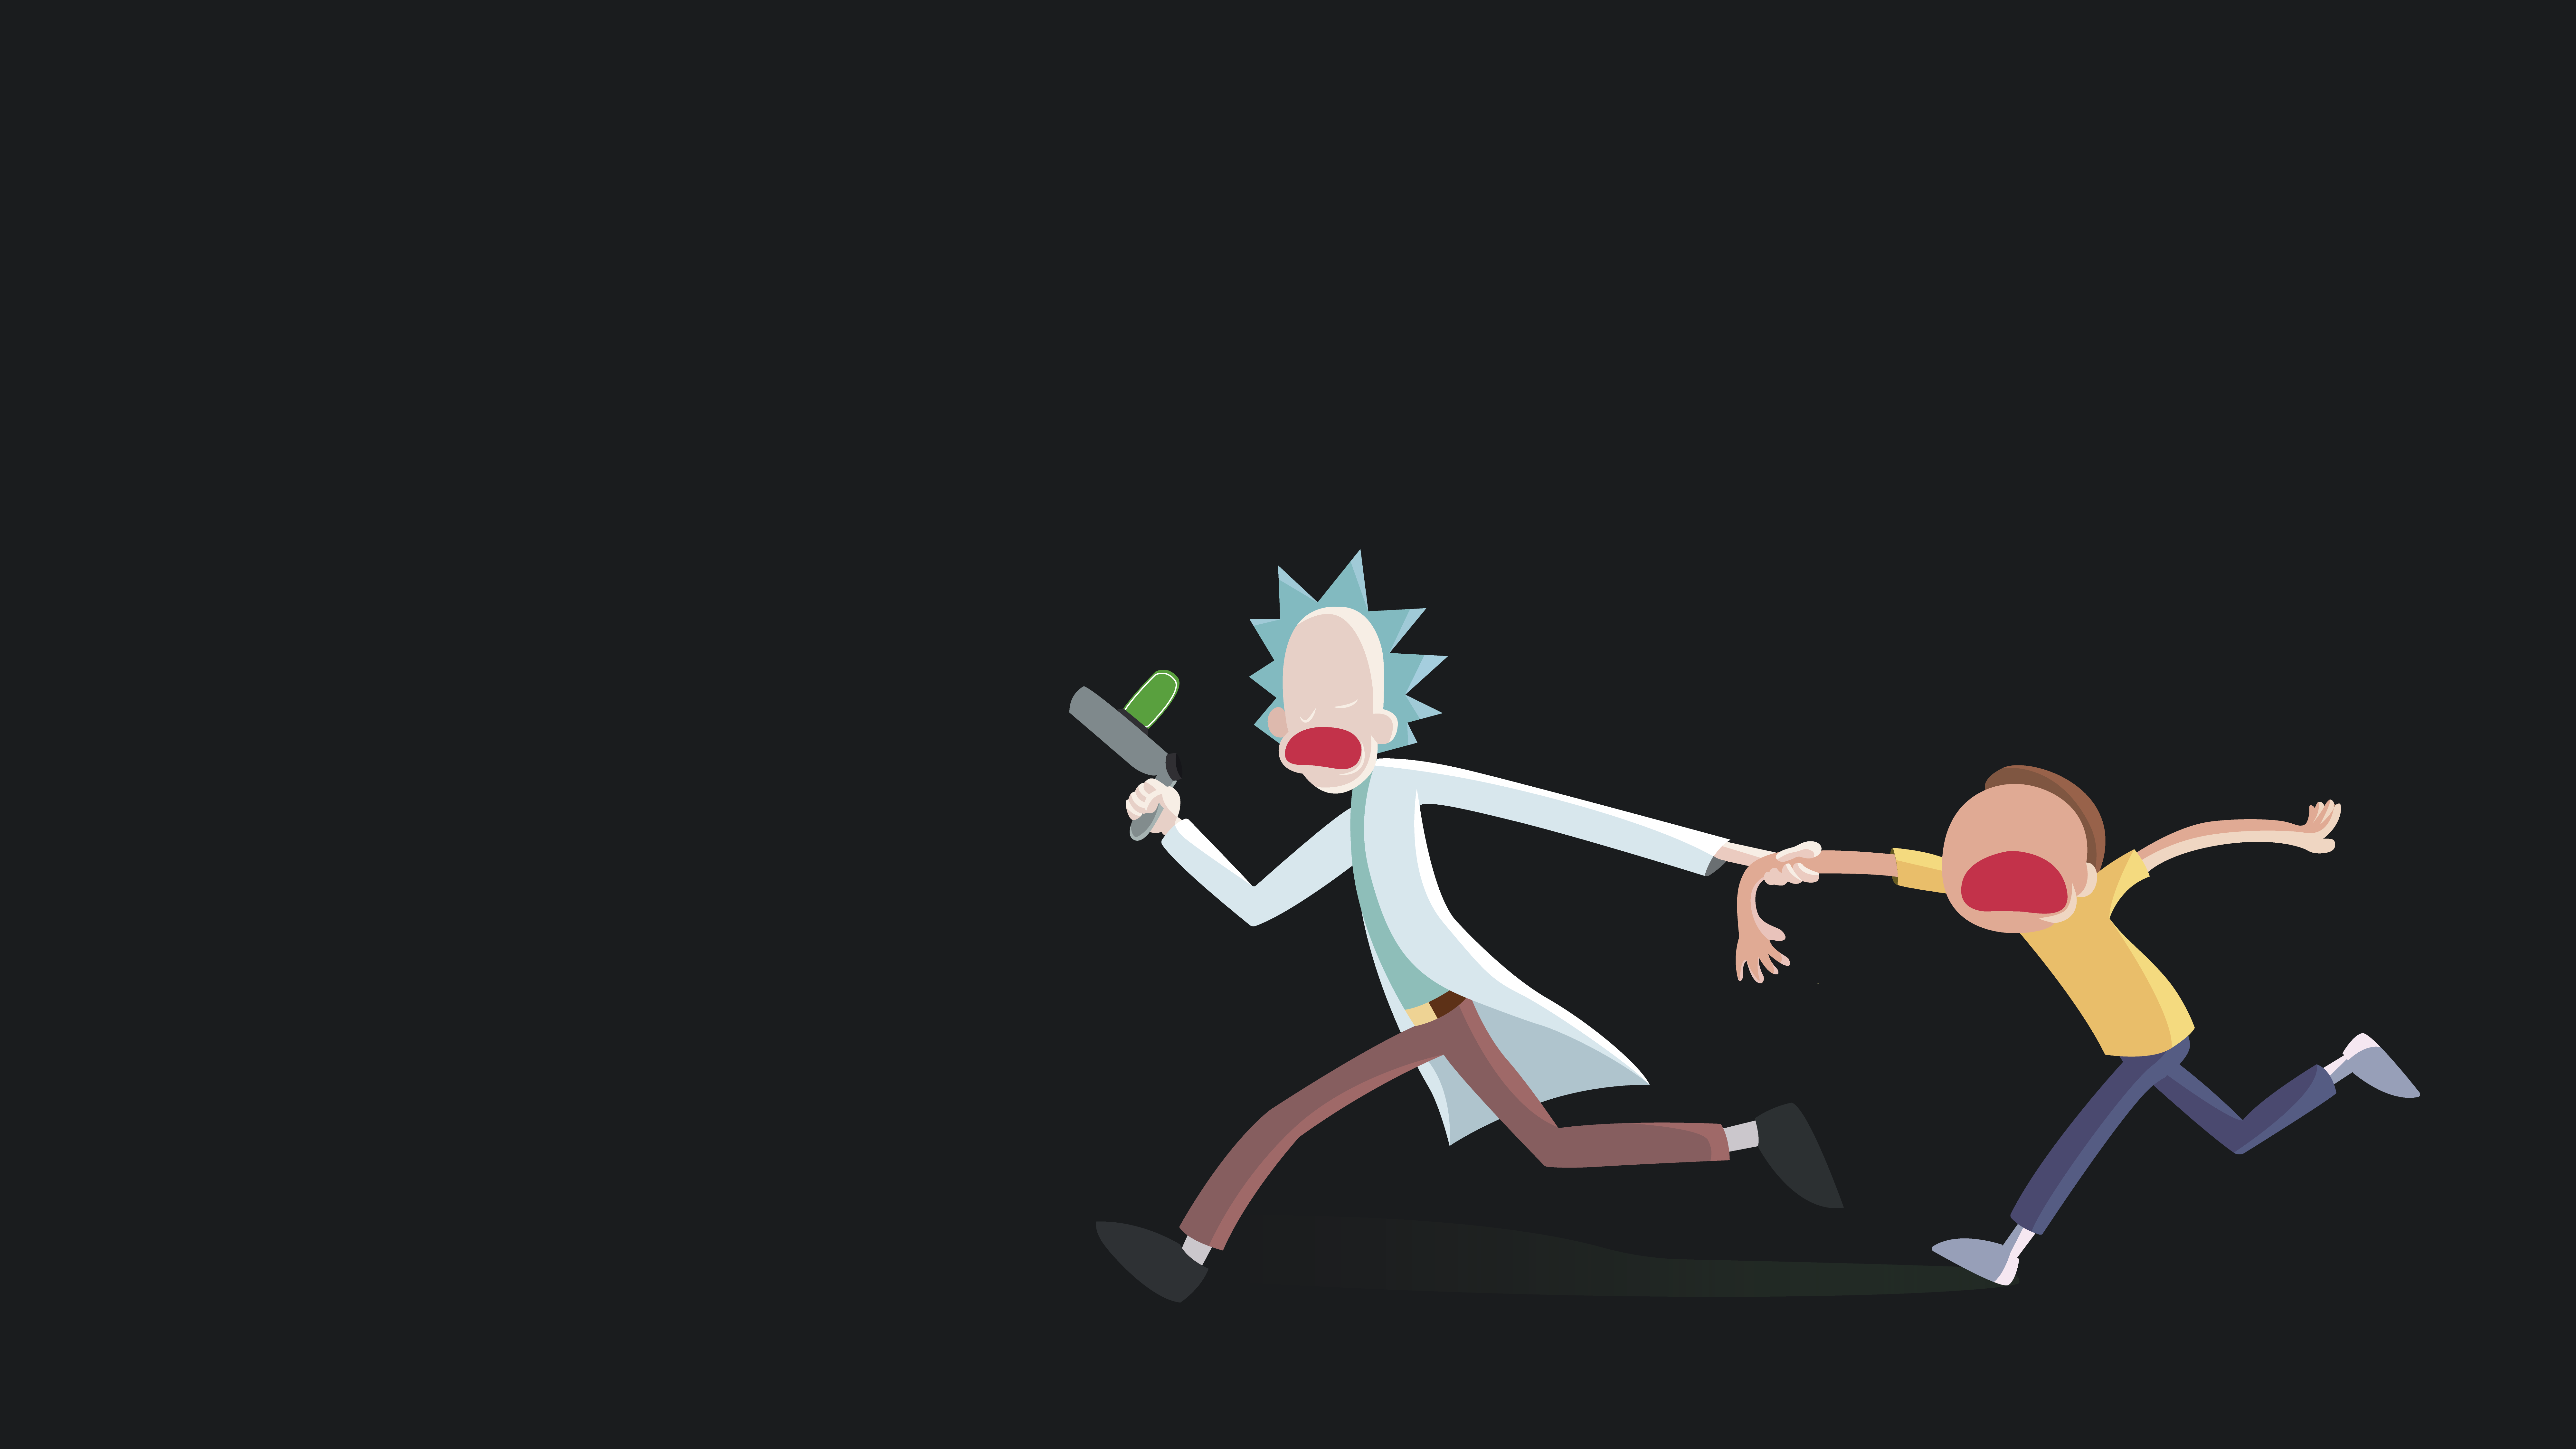 Minimal Rick and Morty by Theztret00